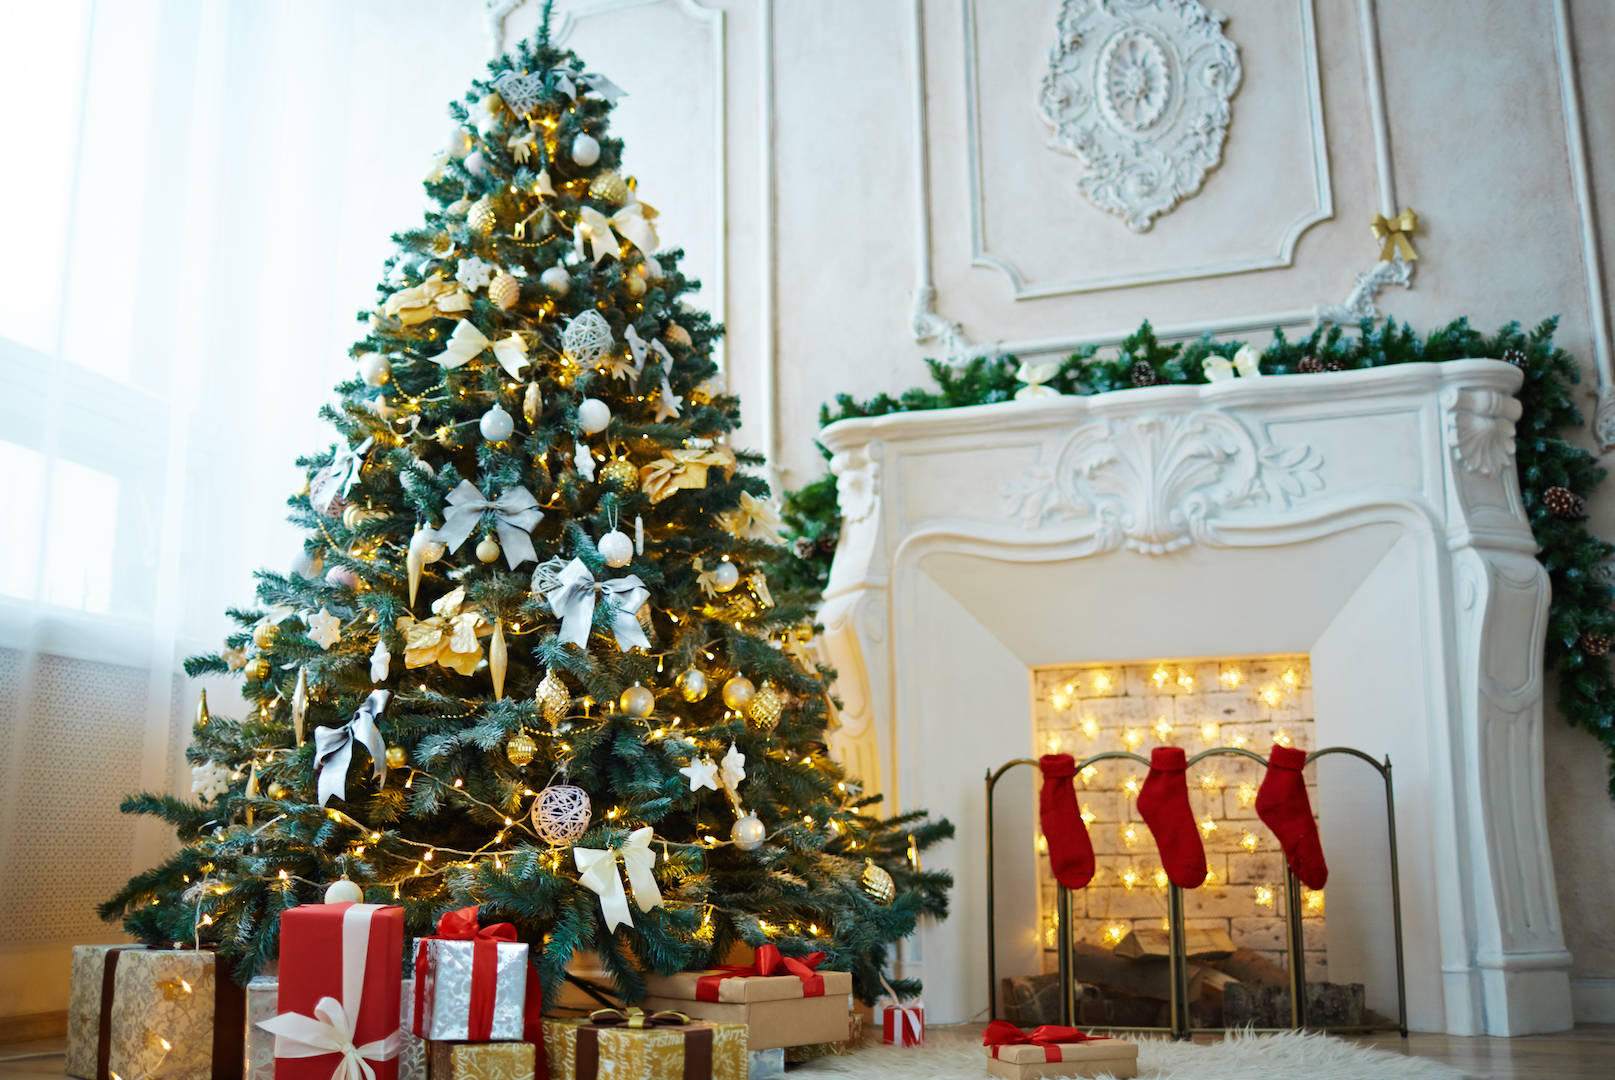 Ok decorated xmas tree packages with gifts and red socks on fireplace in the room voltagebd Images